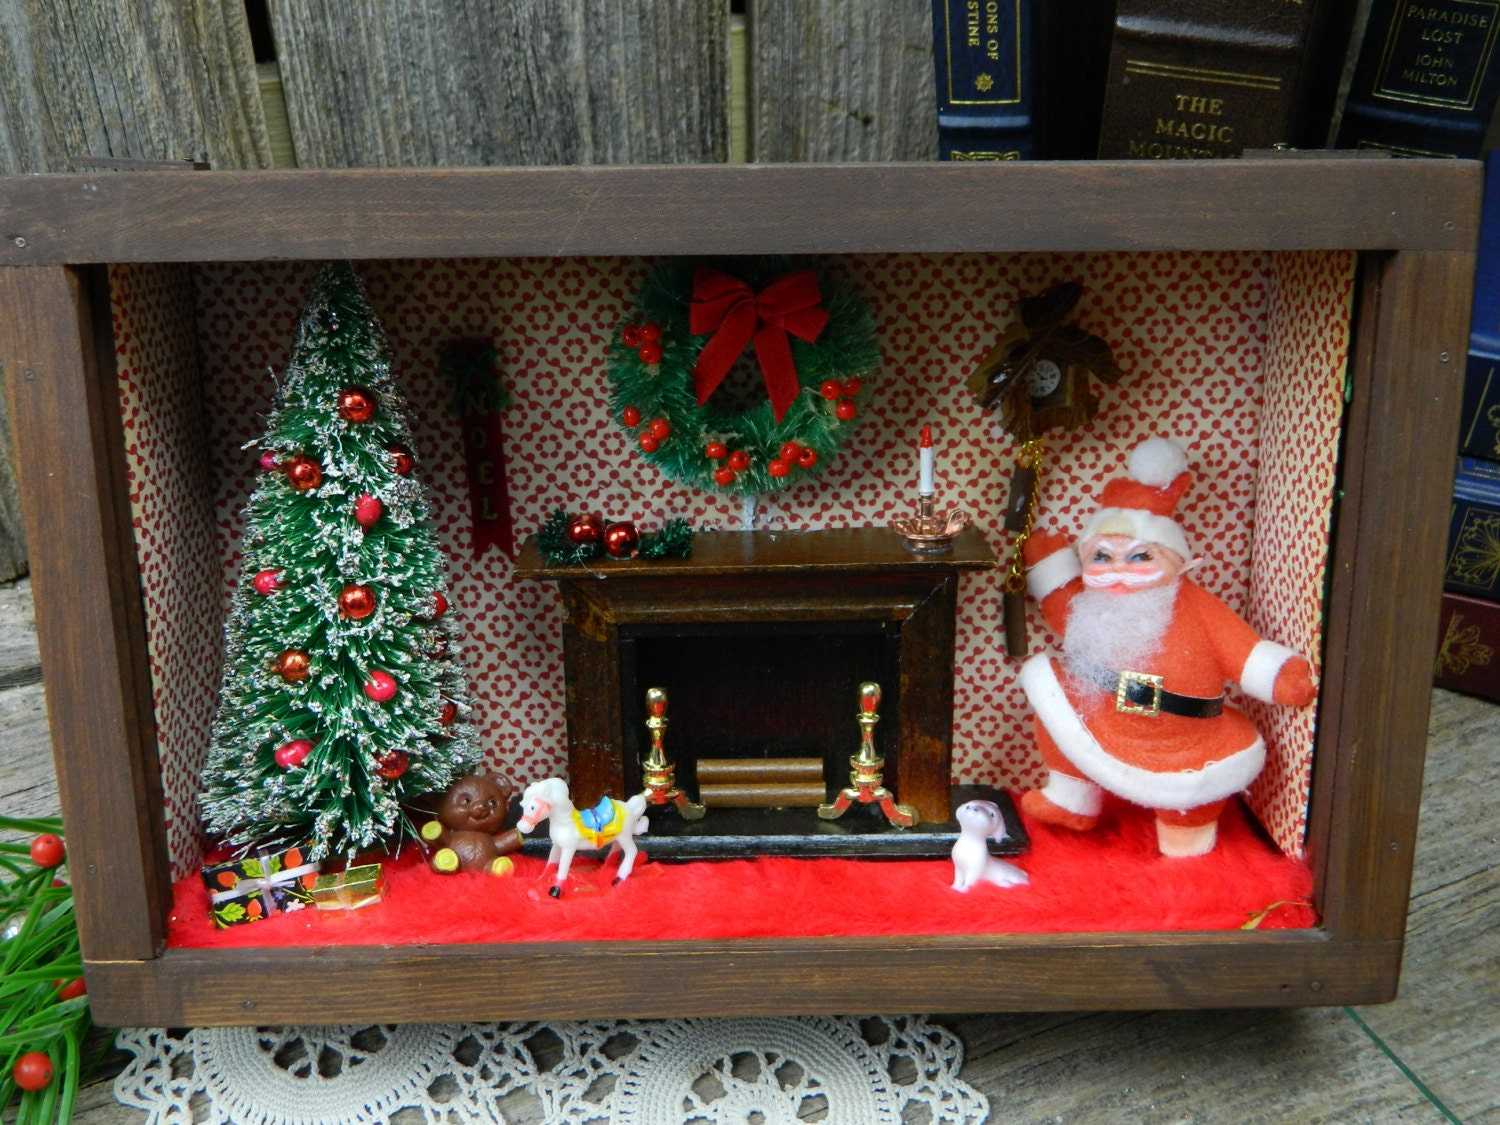 Kitchen Diorama Made Of Cereal Box: Vintage Mid Century Christmas Diorama Shadow Box Handmade